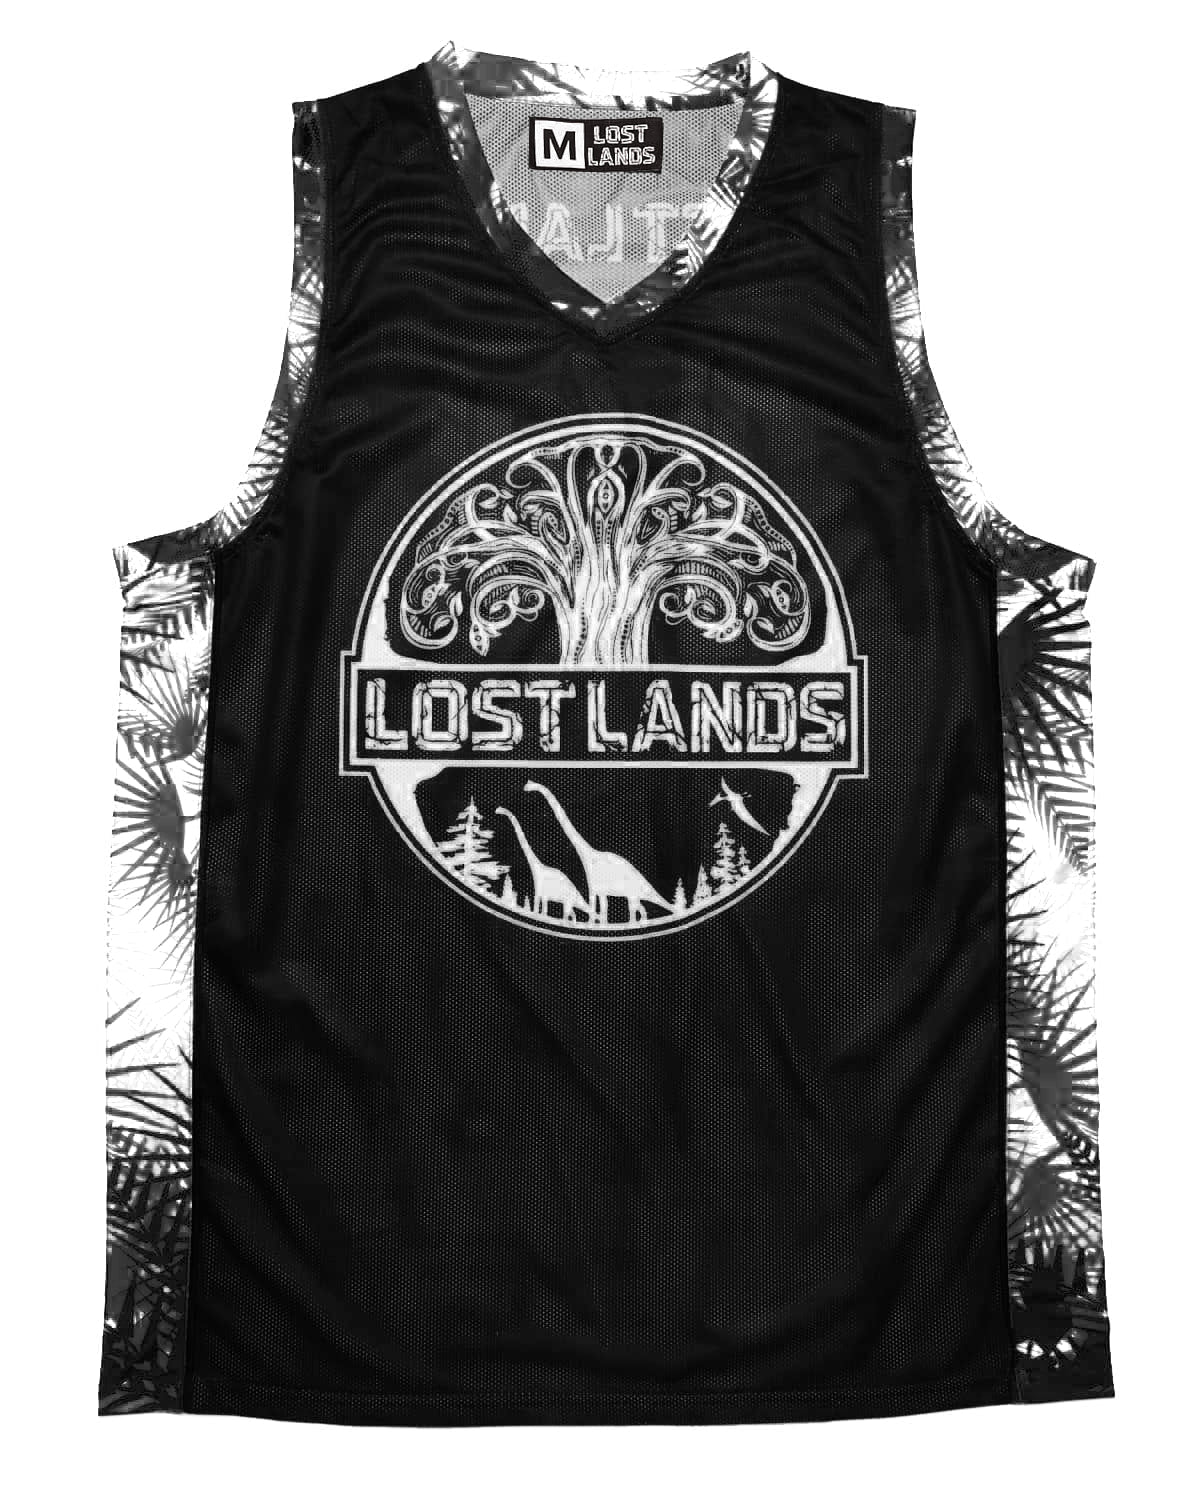 Lost Lands 'Foliage' Basketball Jersey - Black/White